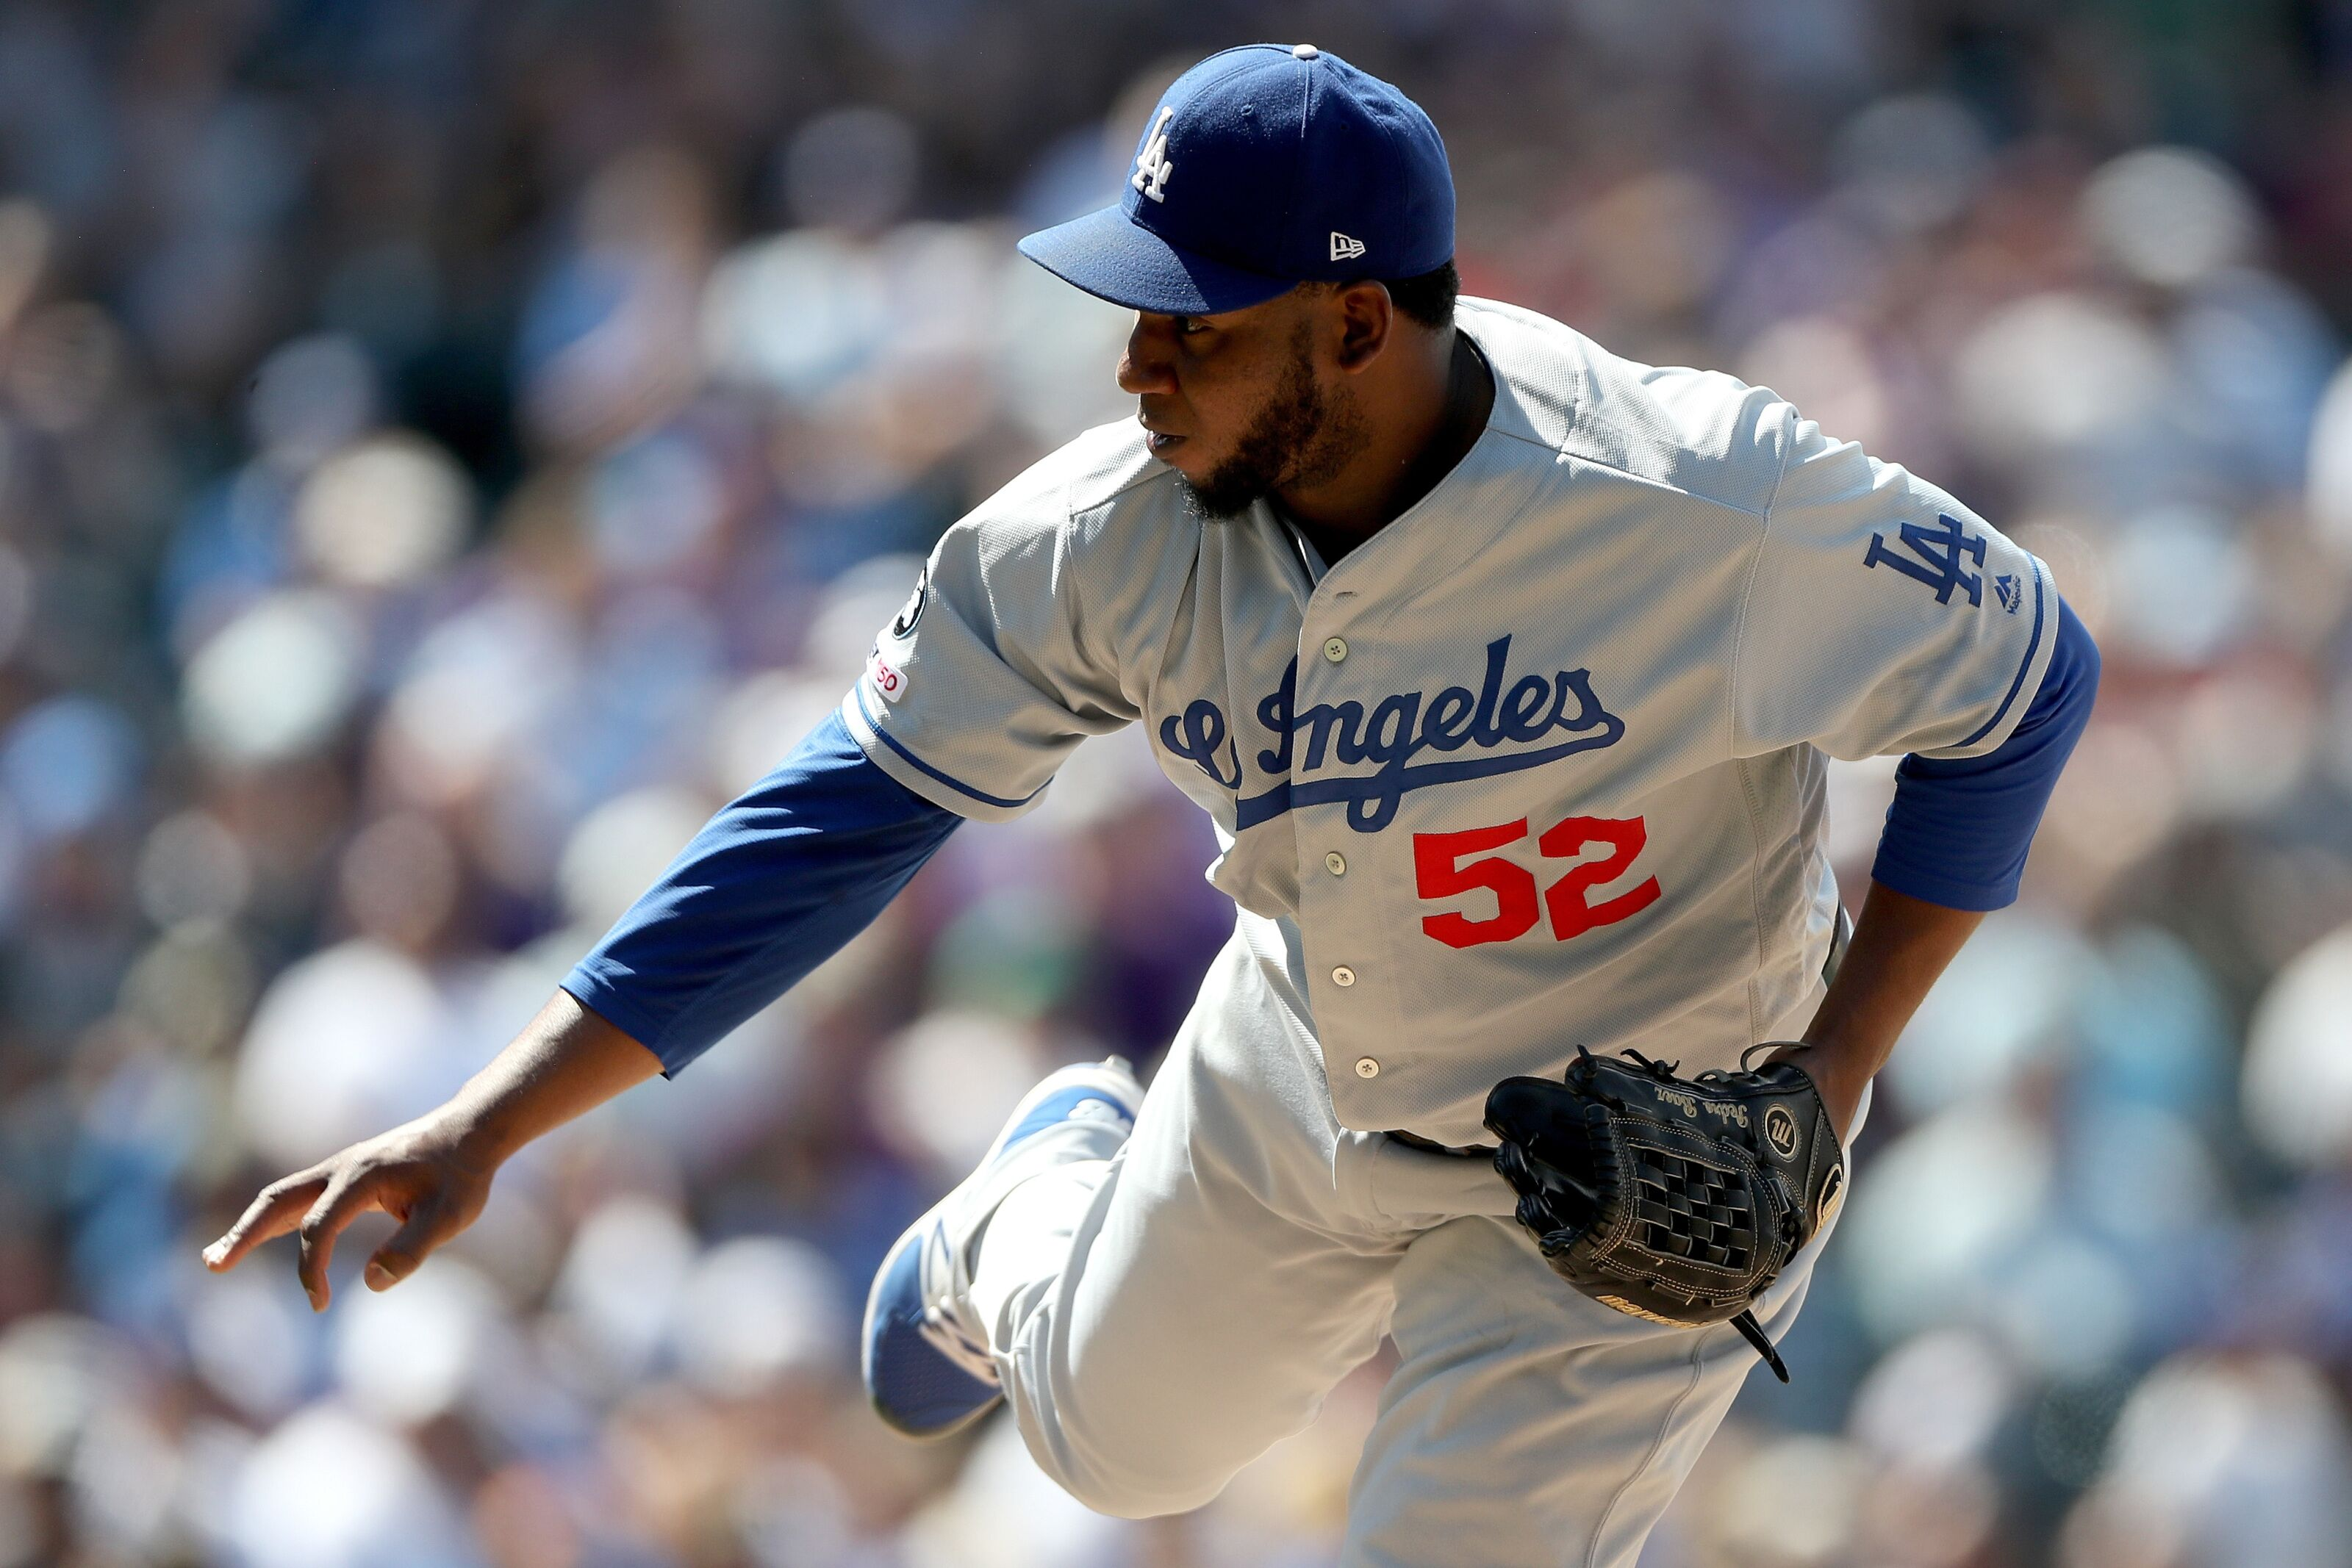 Dodgers: Which relievers have been the best in high leverage situations?